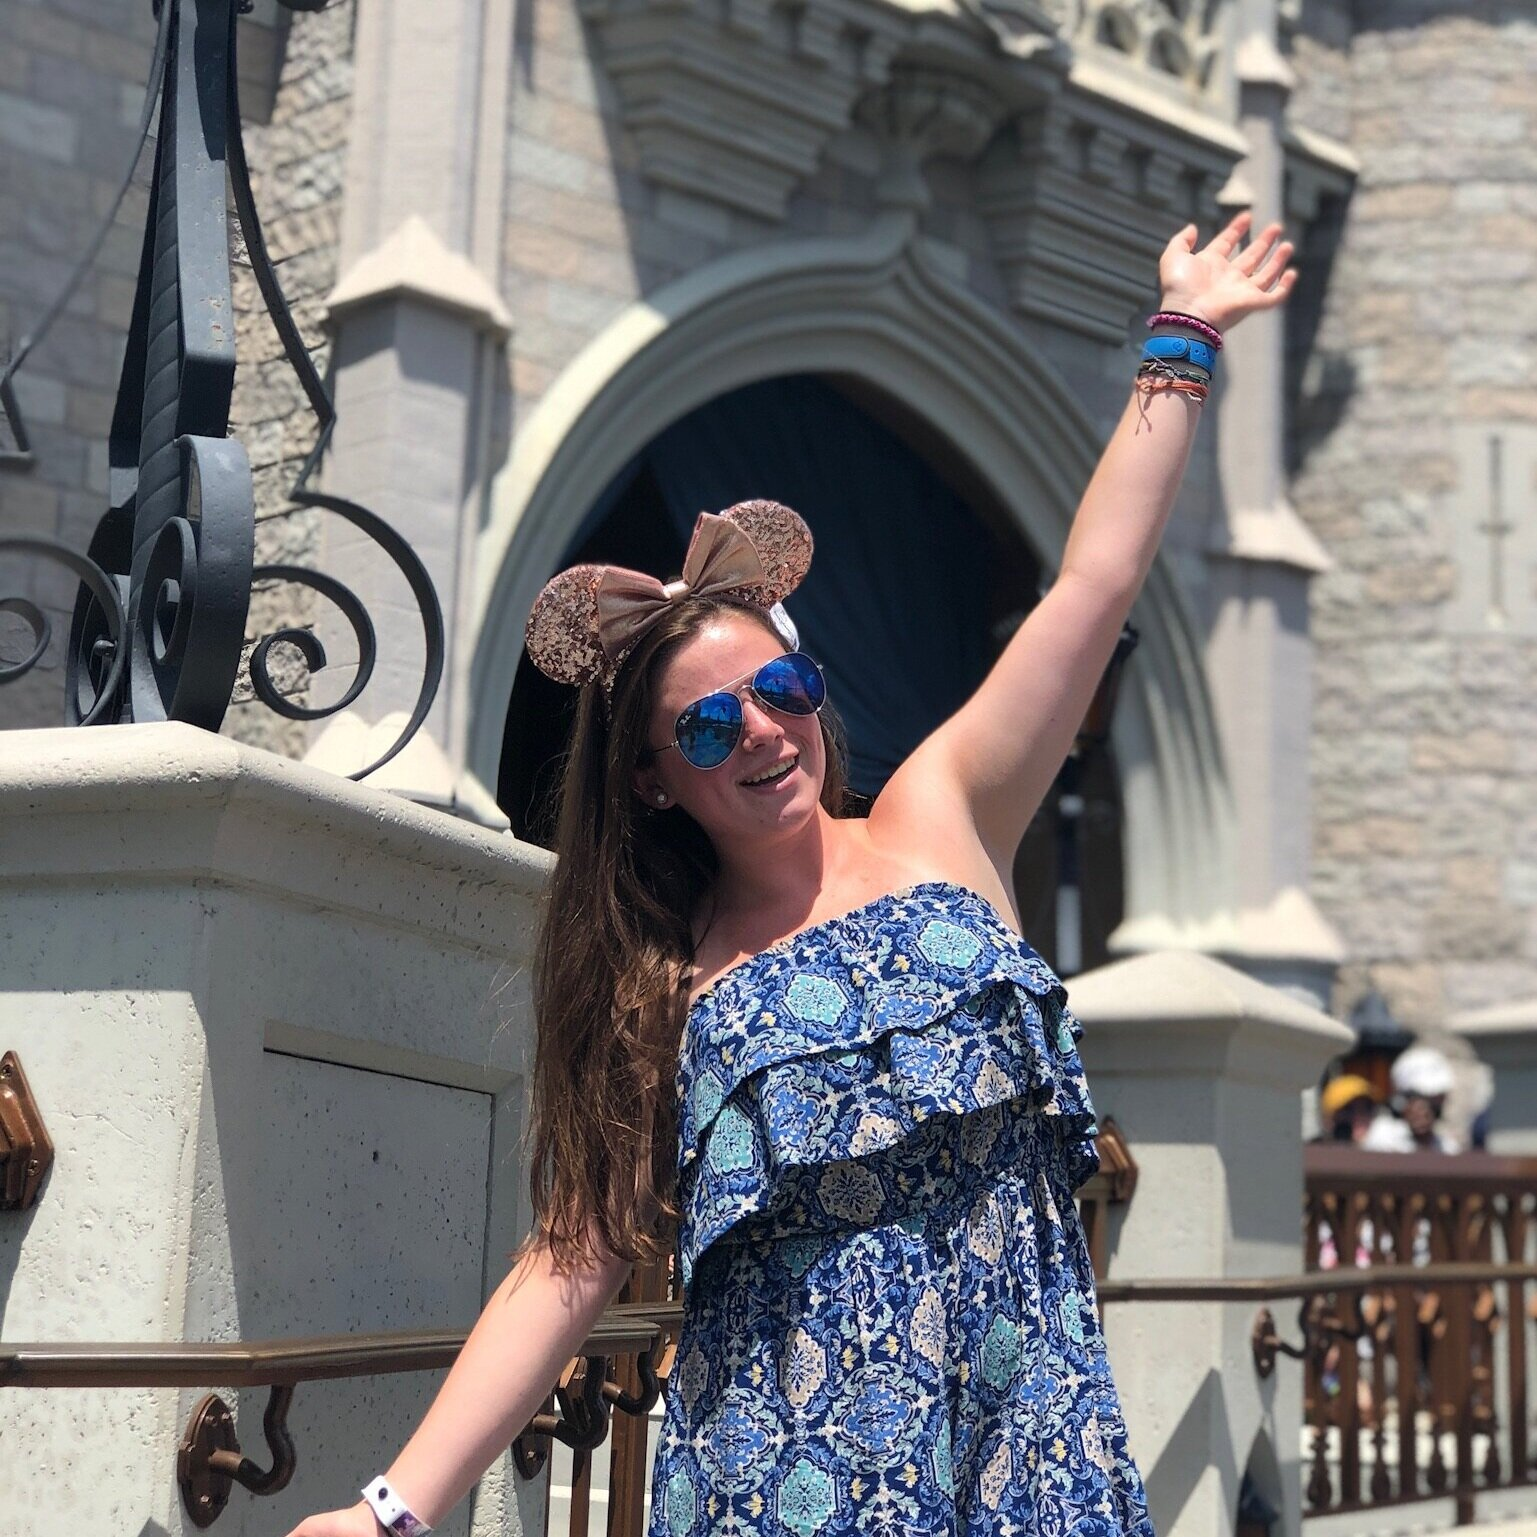 Kira is the center of attention in this Castle pic! - Tips for Taking the Best Photos at Walt Disney World